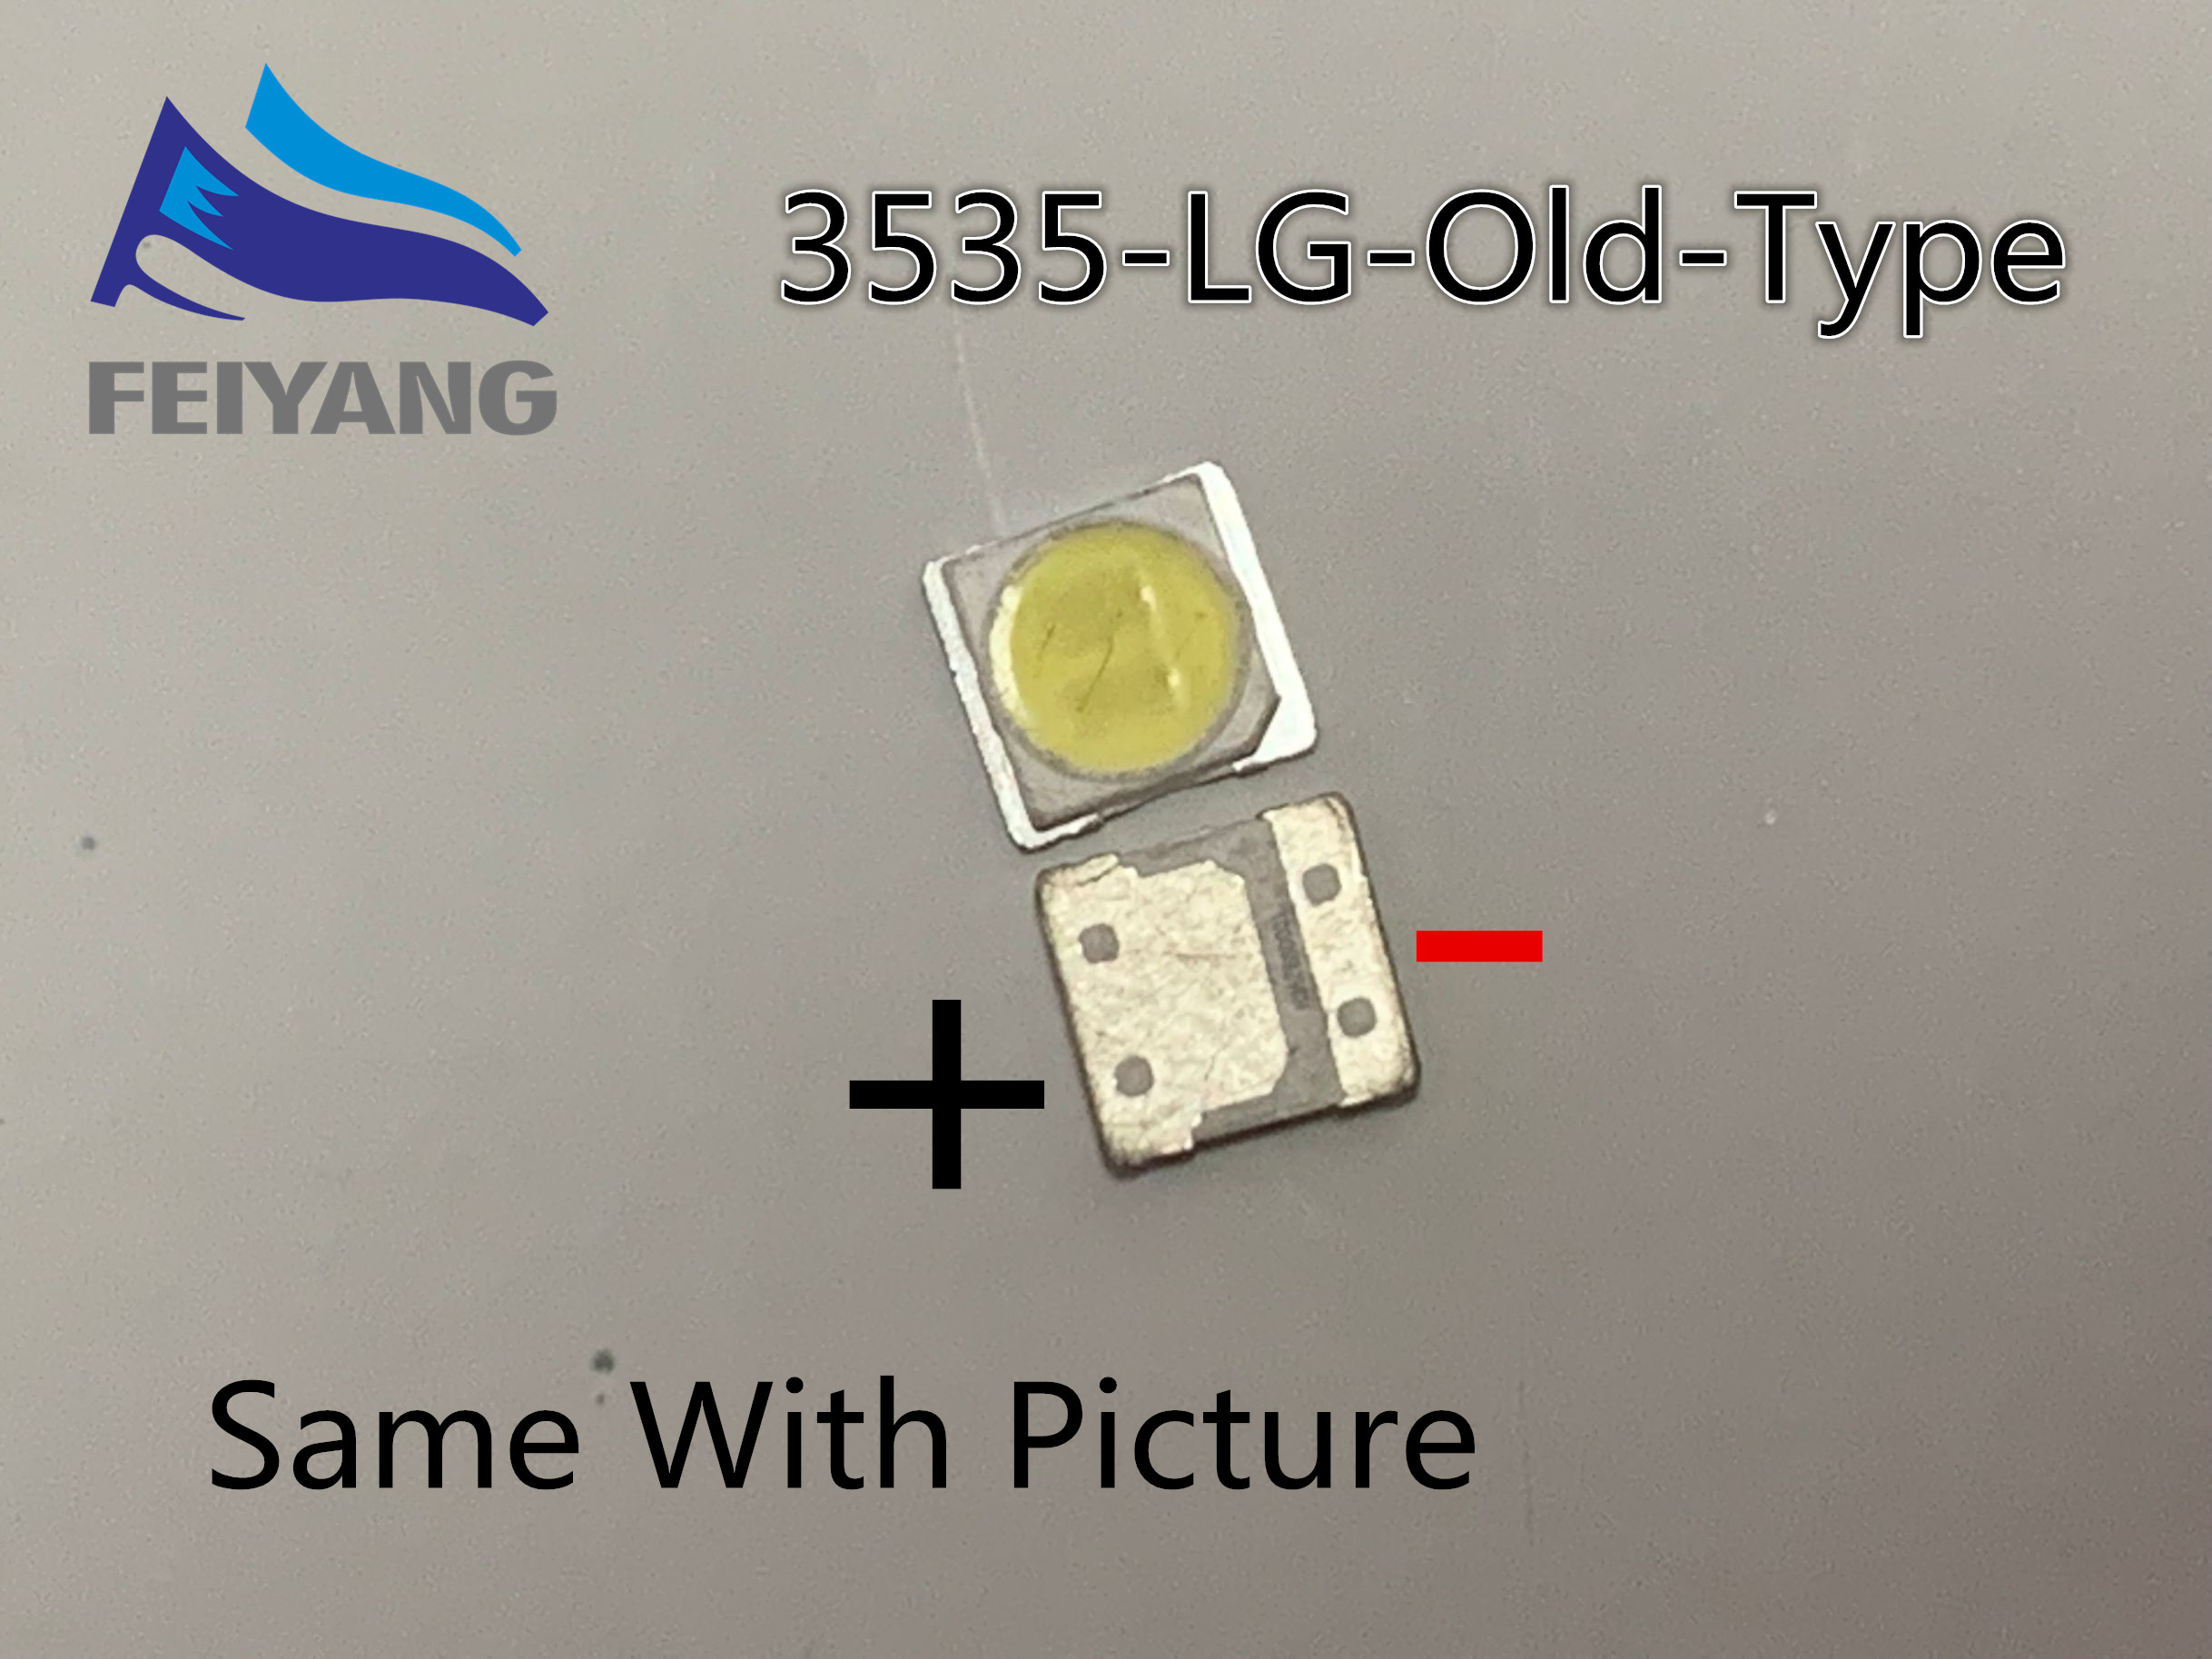 50PCS FOR LCD TV repair <font><b>LG</b></font> <font><b>led</b></font> TV backlight strip lights with light-emitting diode 3535 <font><b>SMD</b></font> <font><b>LED</b></font> 3535 2W 6V 150LM Old Type image